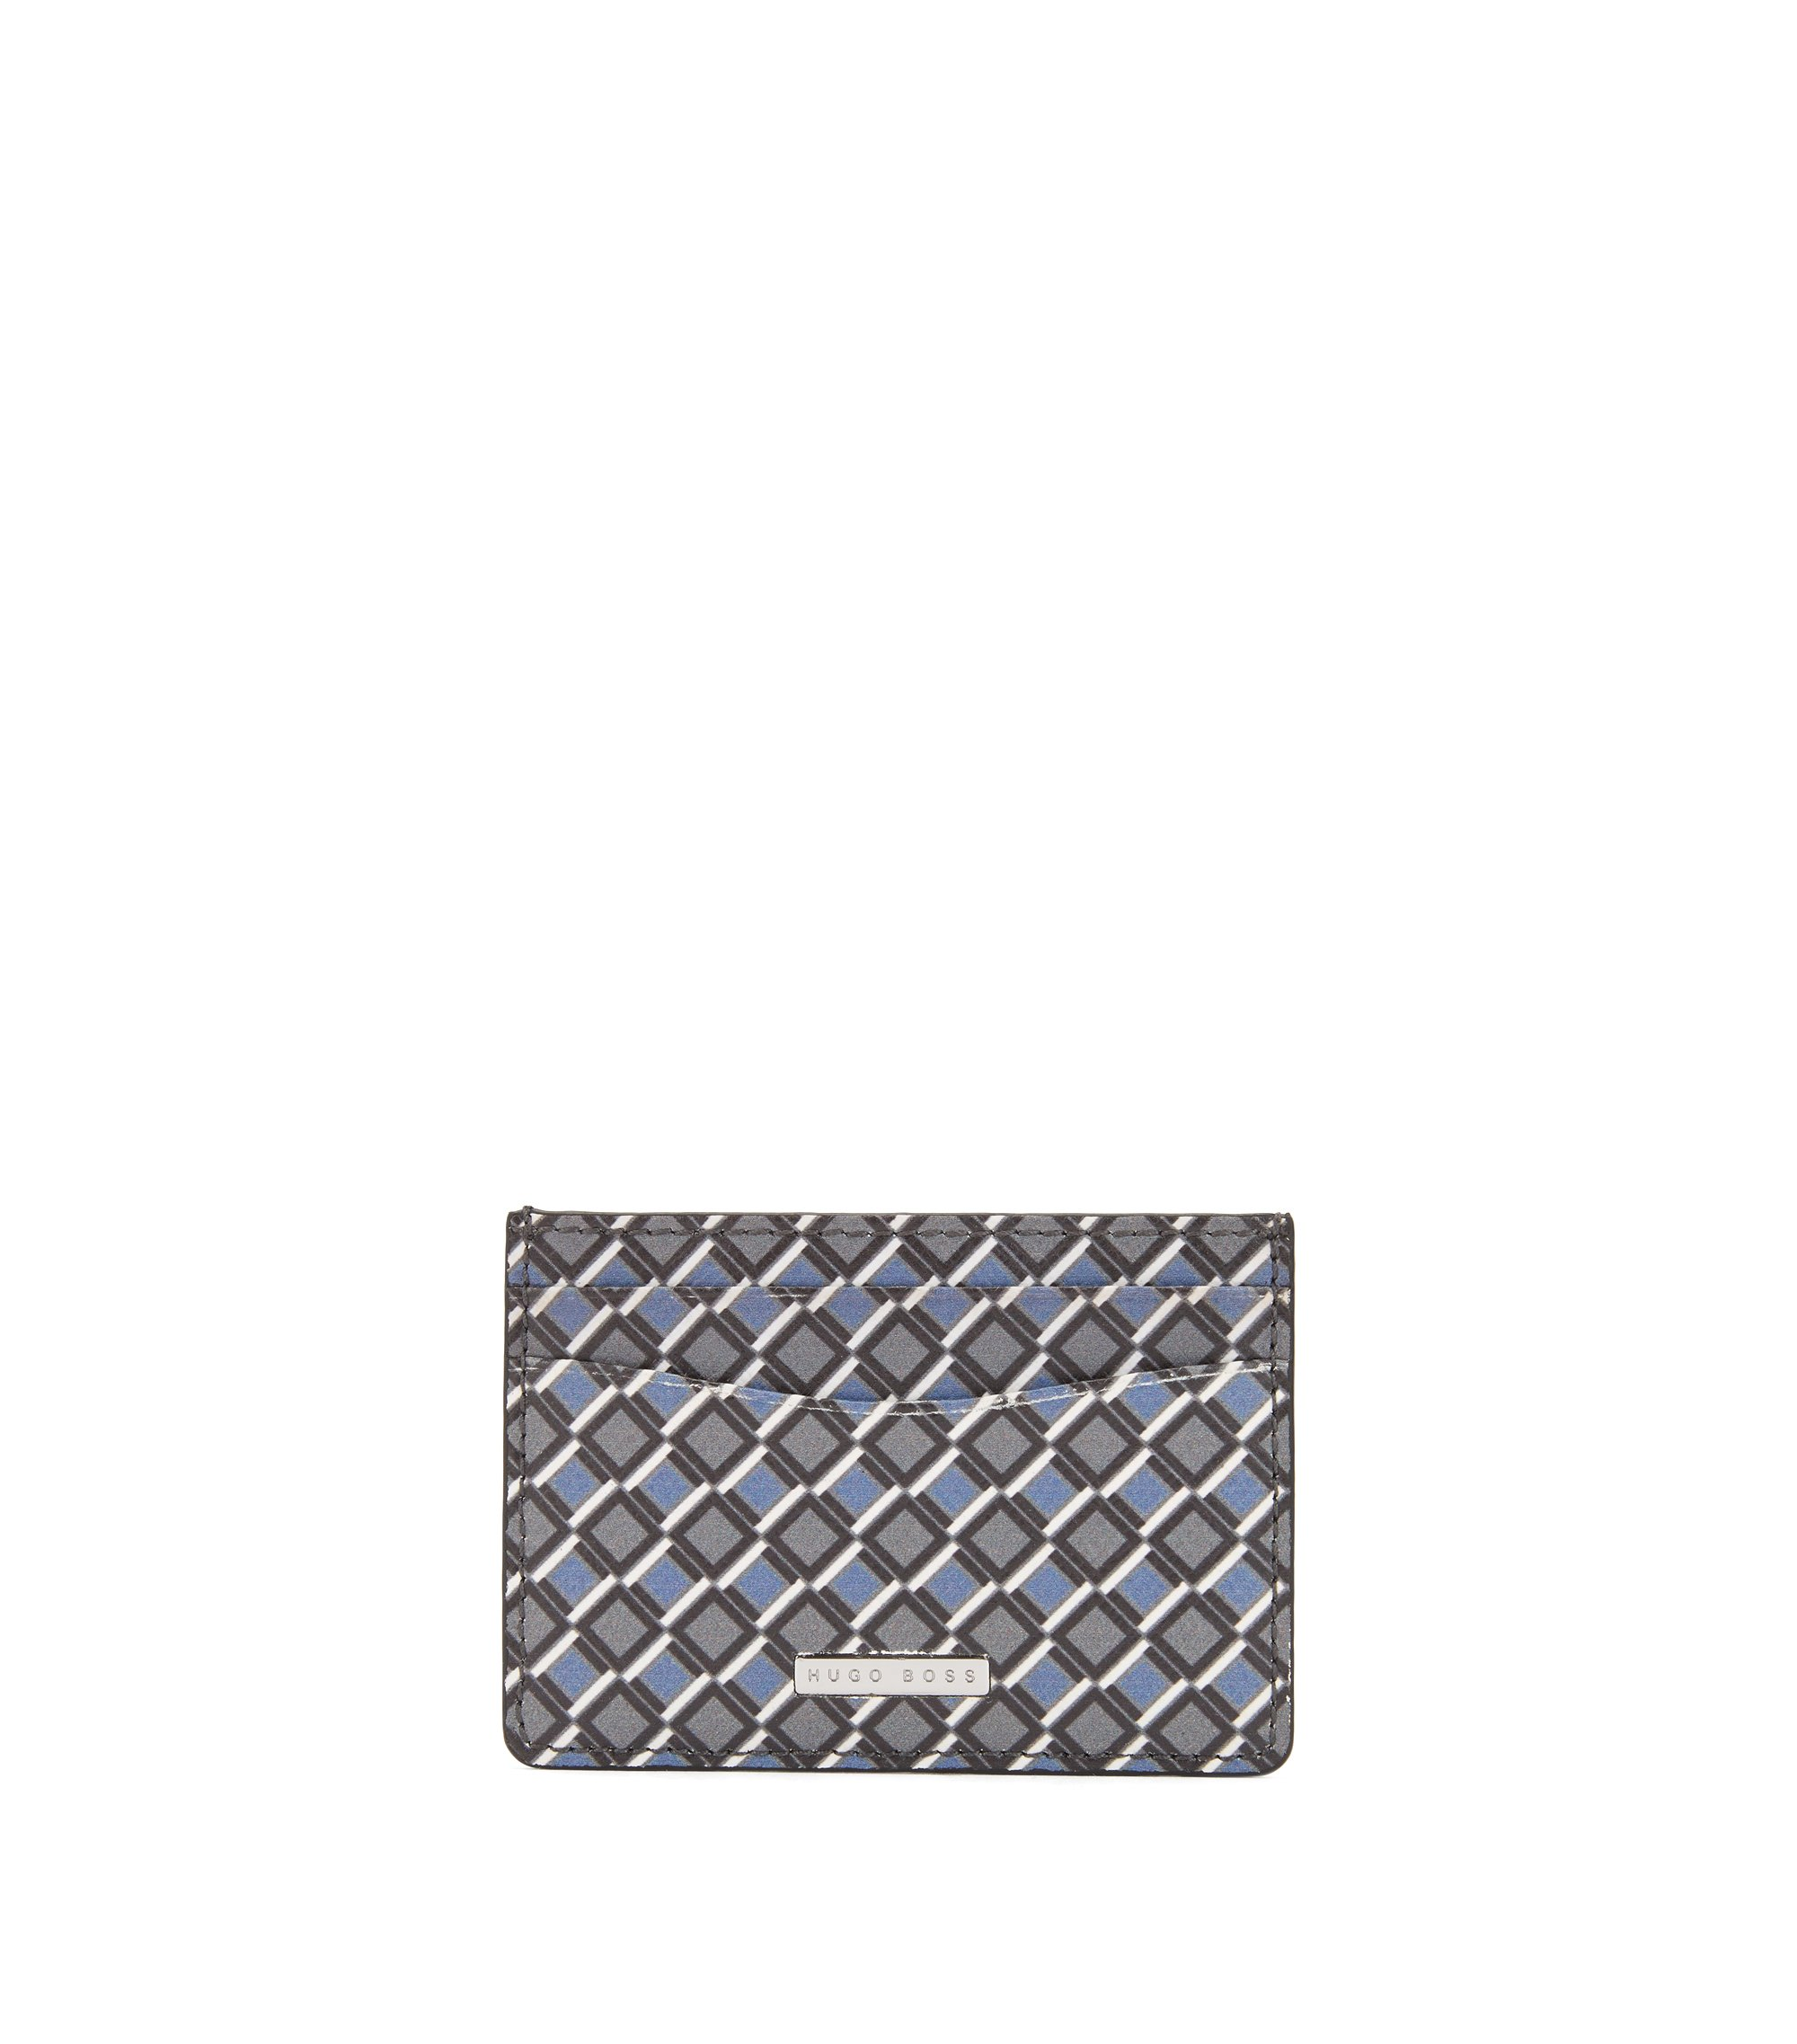 Signature Collection card holder in printed calf leather, Patterned